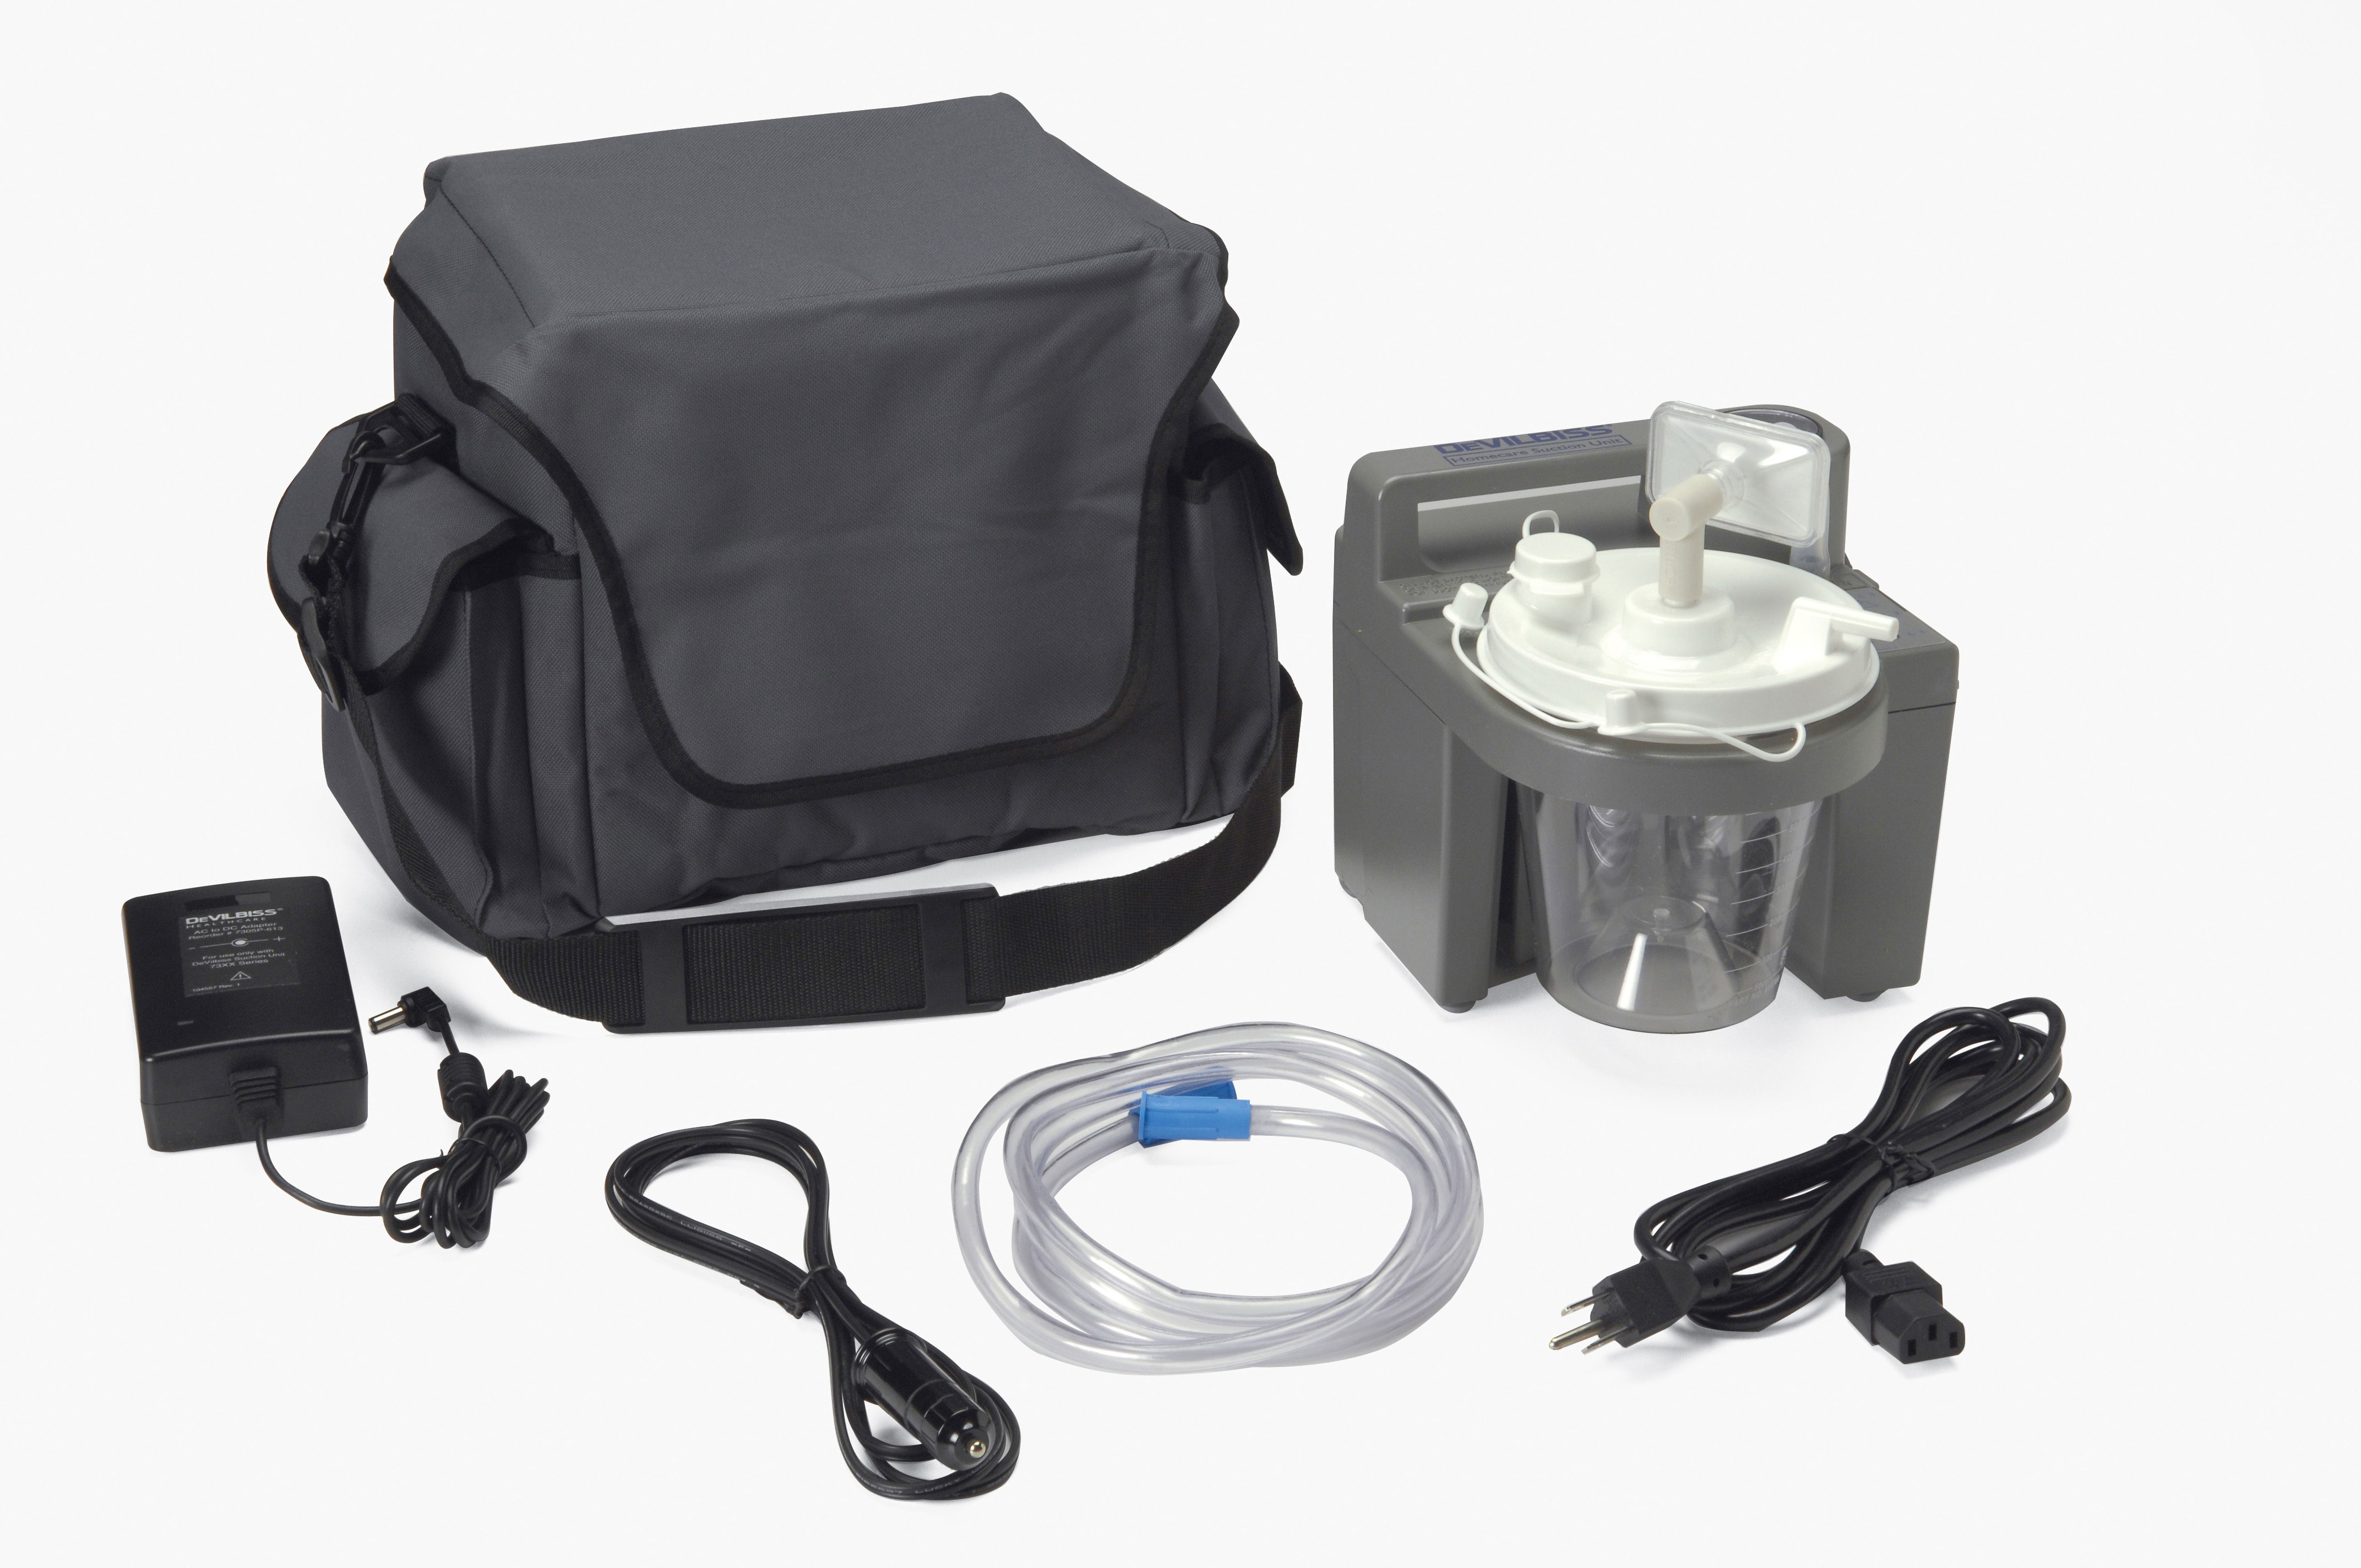 Drive DeVilbiss Healthcare 7305 Series Homecare Suction Unit with External Filter, Battery, and Carrying Case